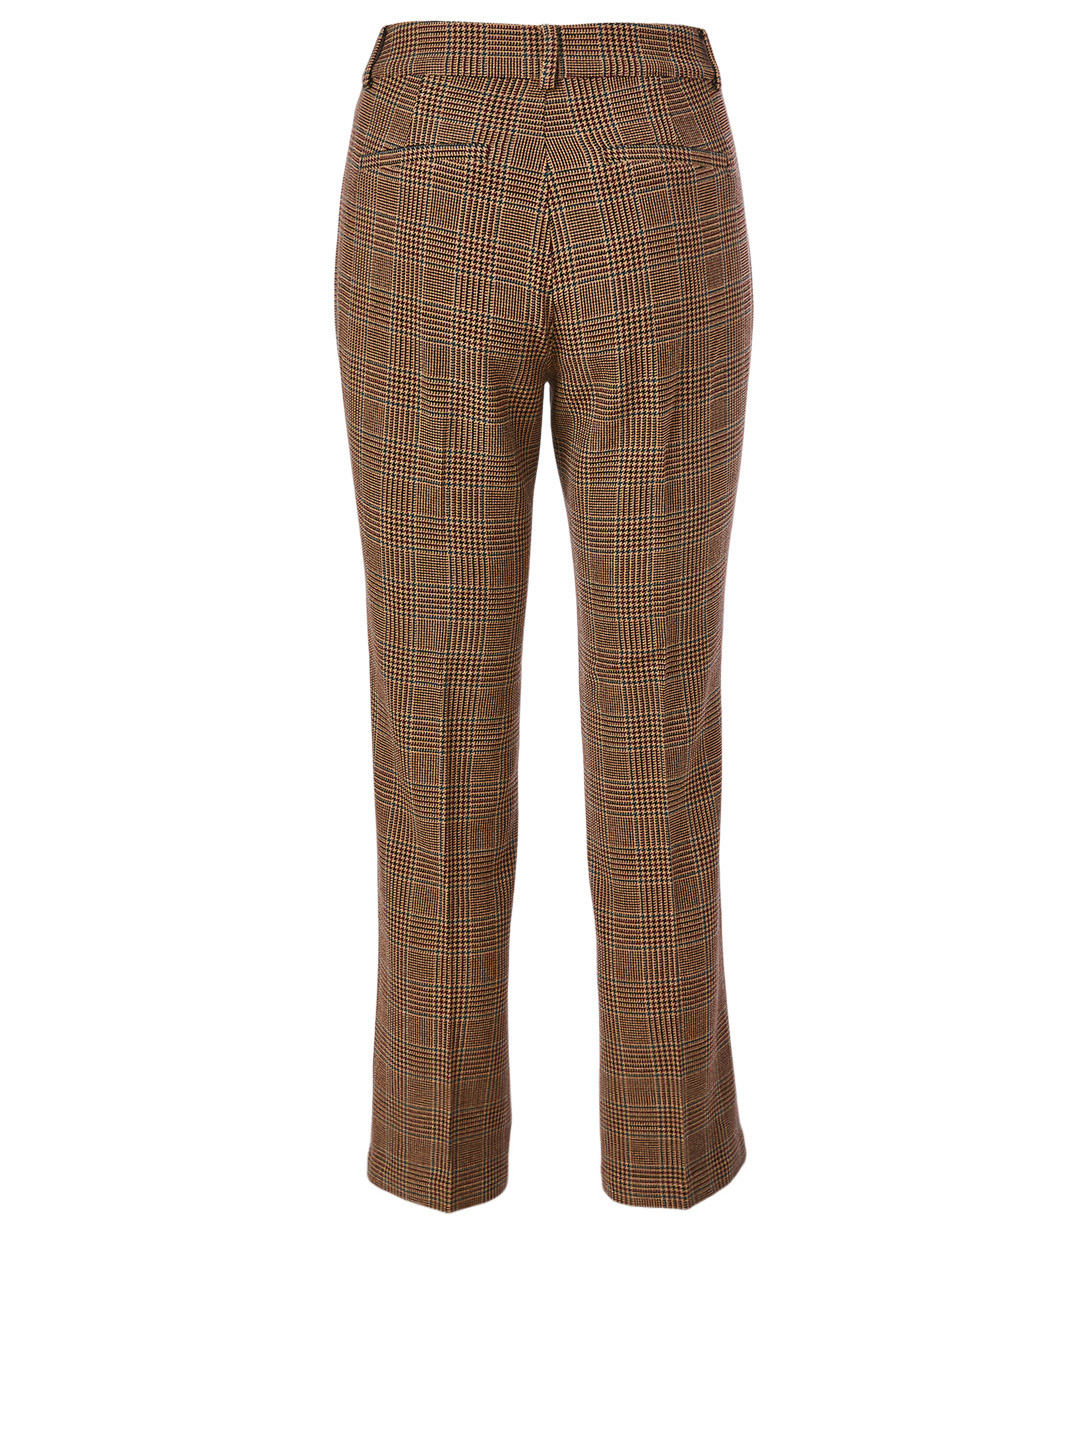 PAIGE Claudine High-Waisted Pants In Houndstooth Plaid Print Women's Beige